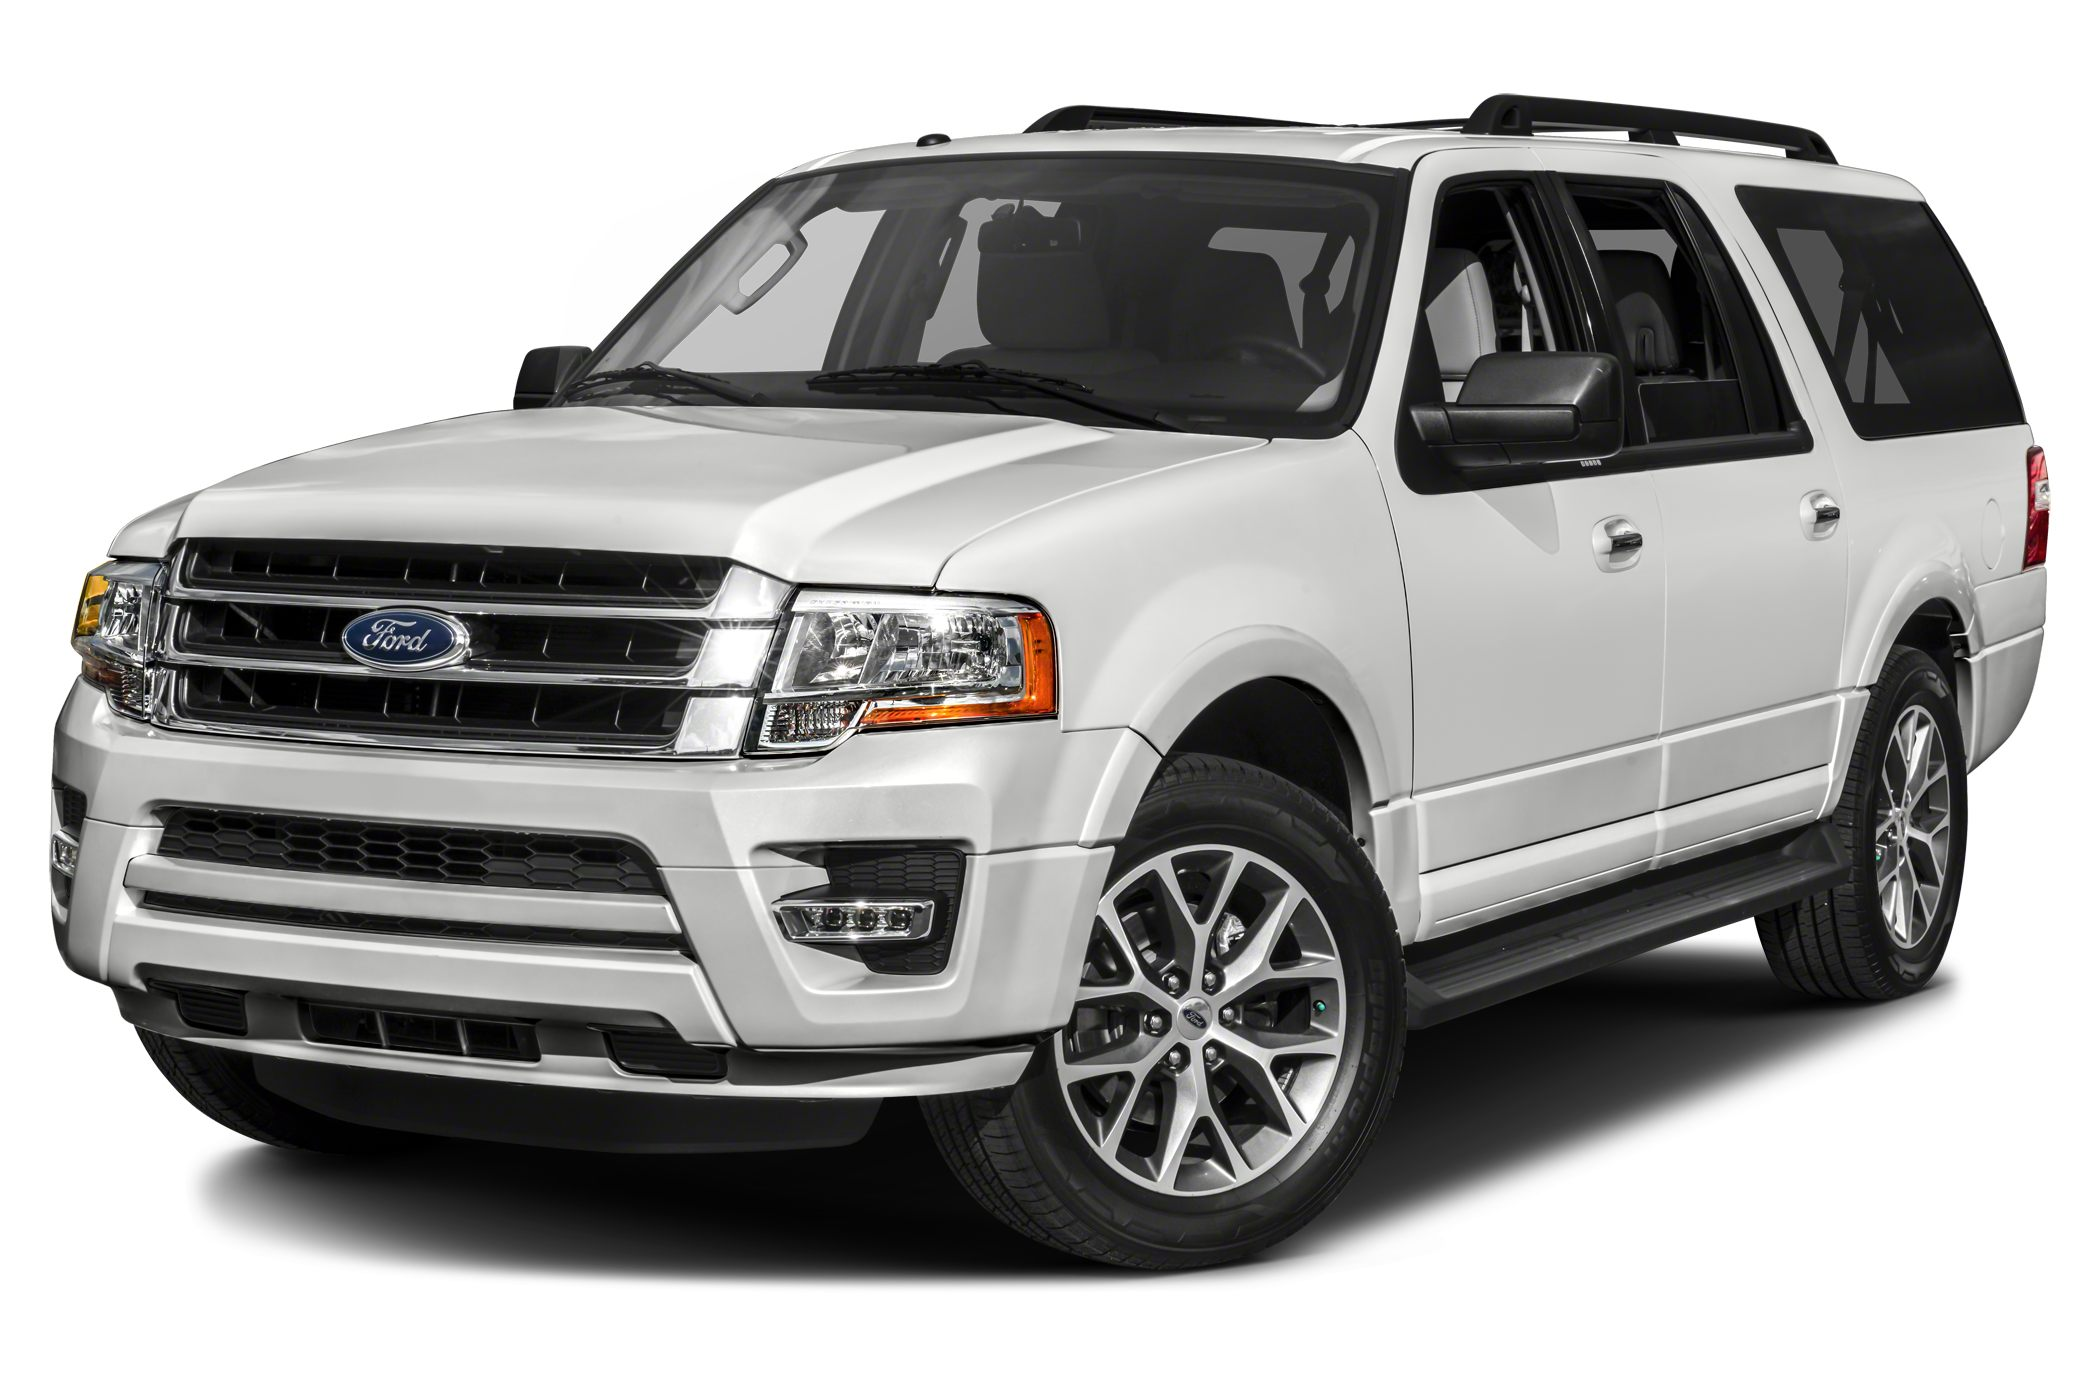 2015 Ford Expedition EL  SAVE THOUSANDS OFF NEW FORD CERTIFIED Pre-Owned means you get a 1-ye